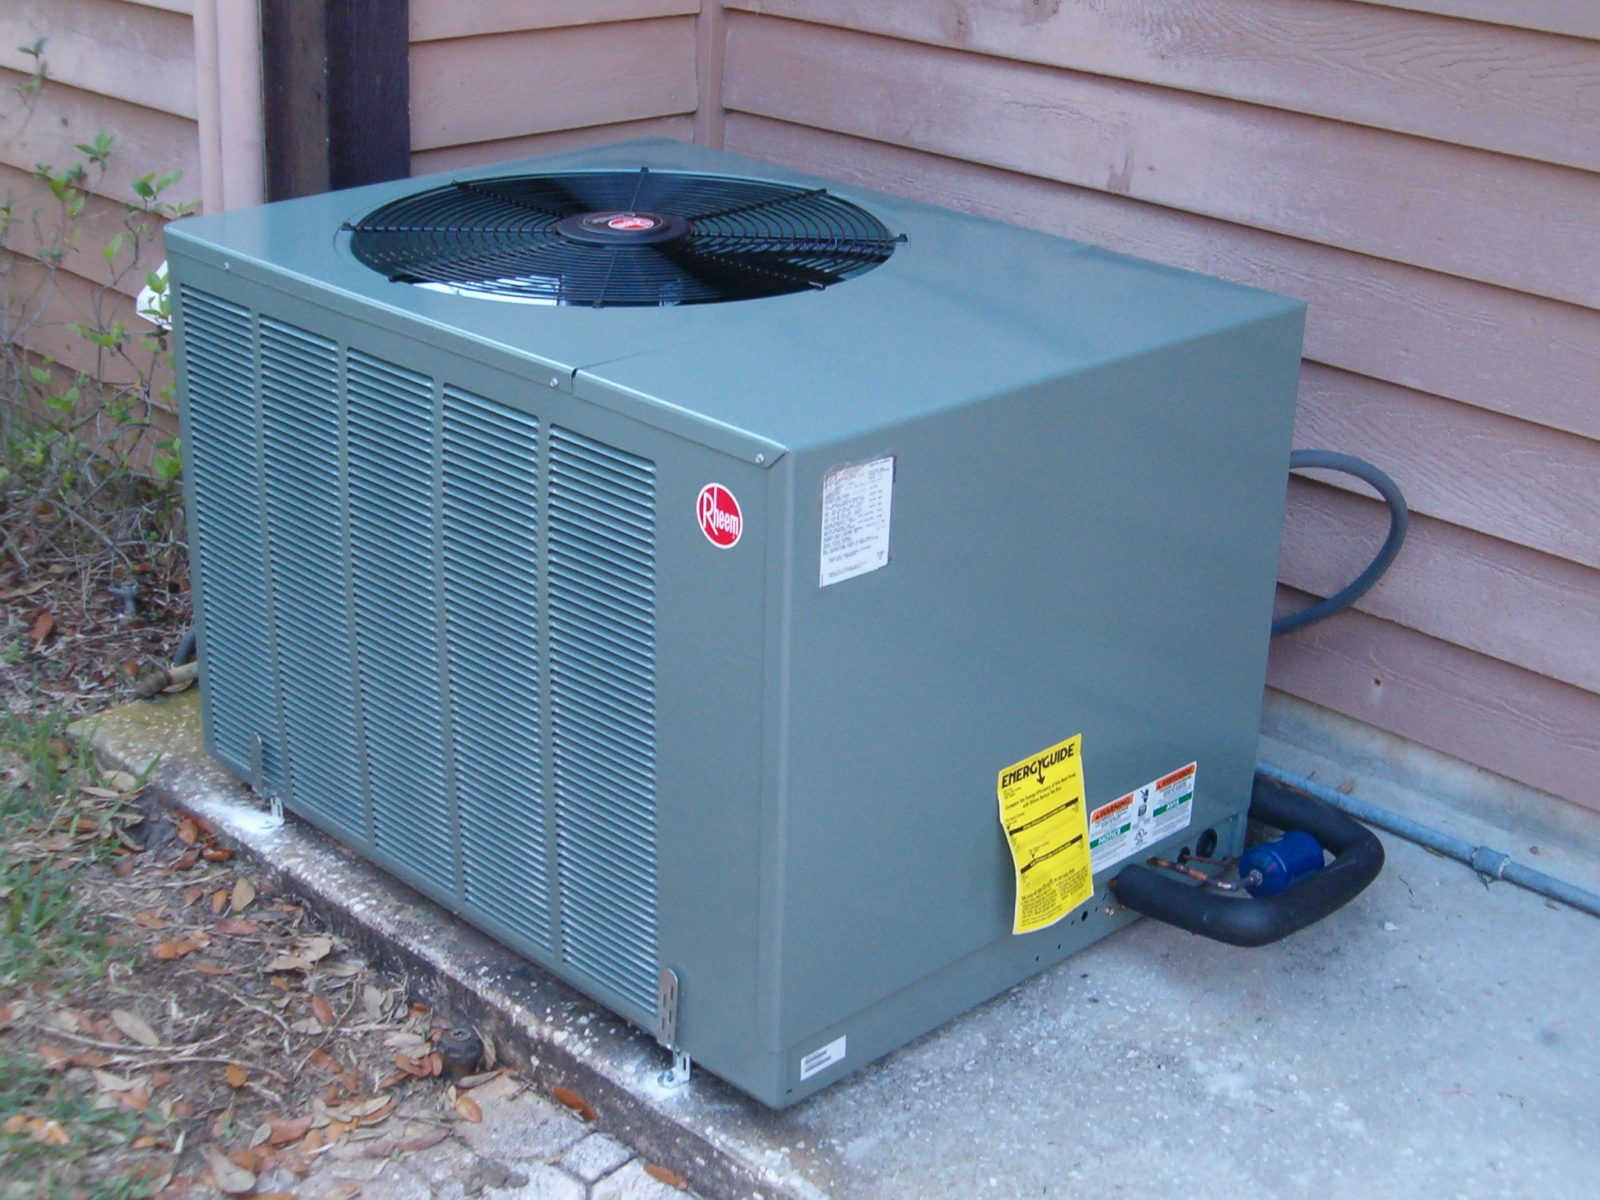 affordable rheem central air conditioning installer in newark, nj